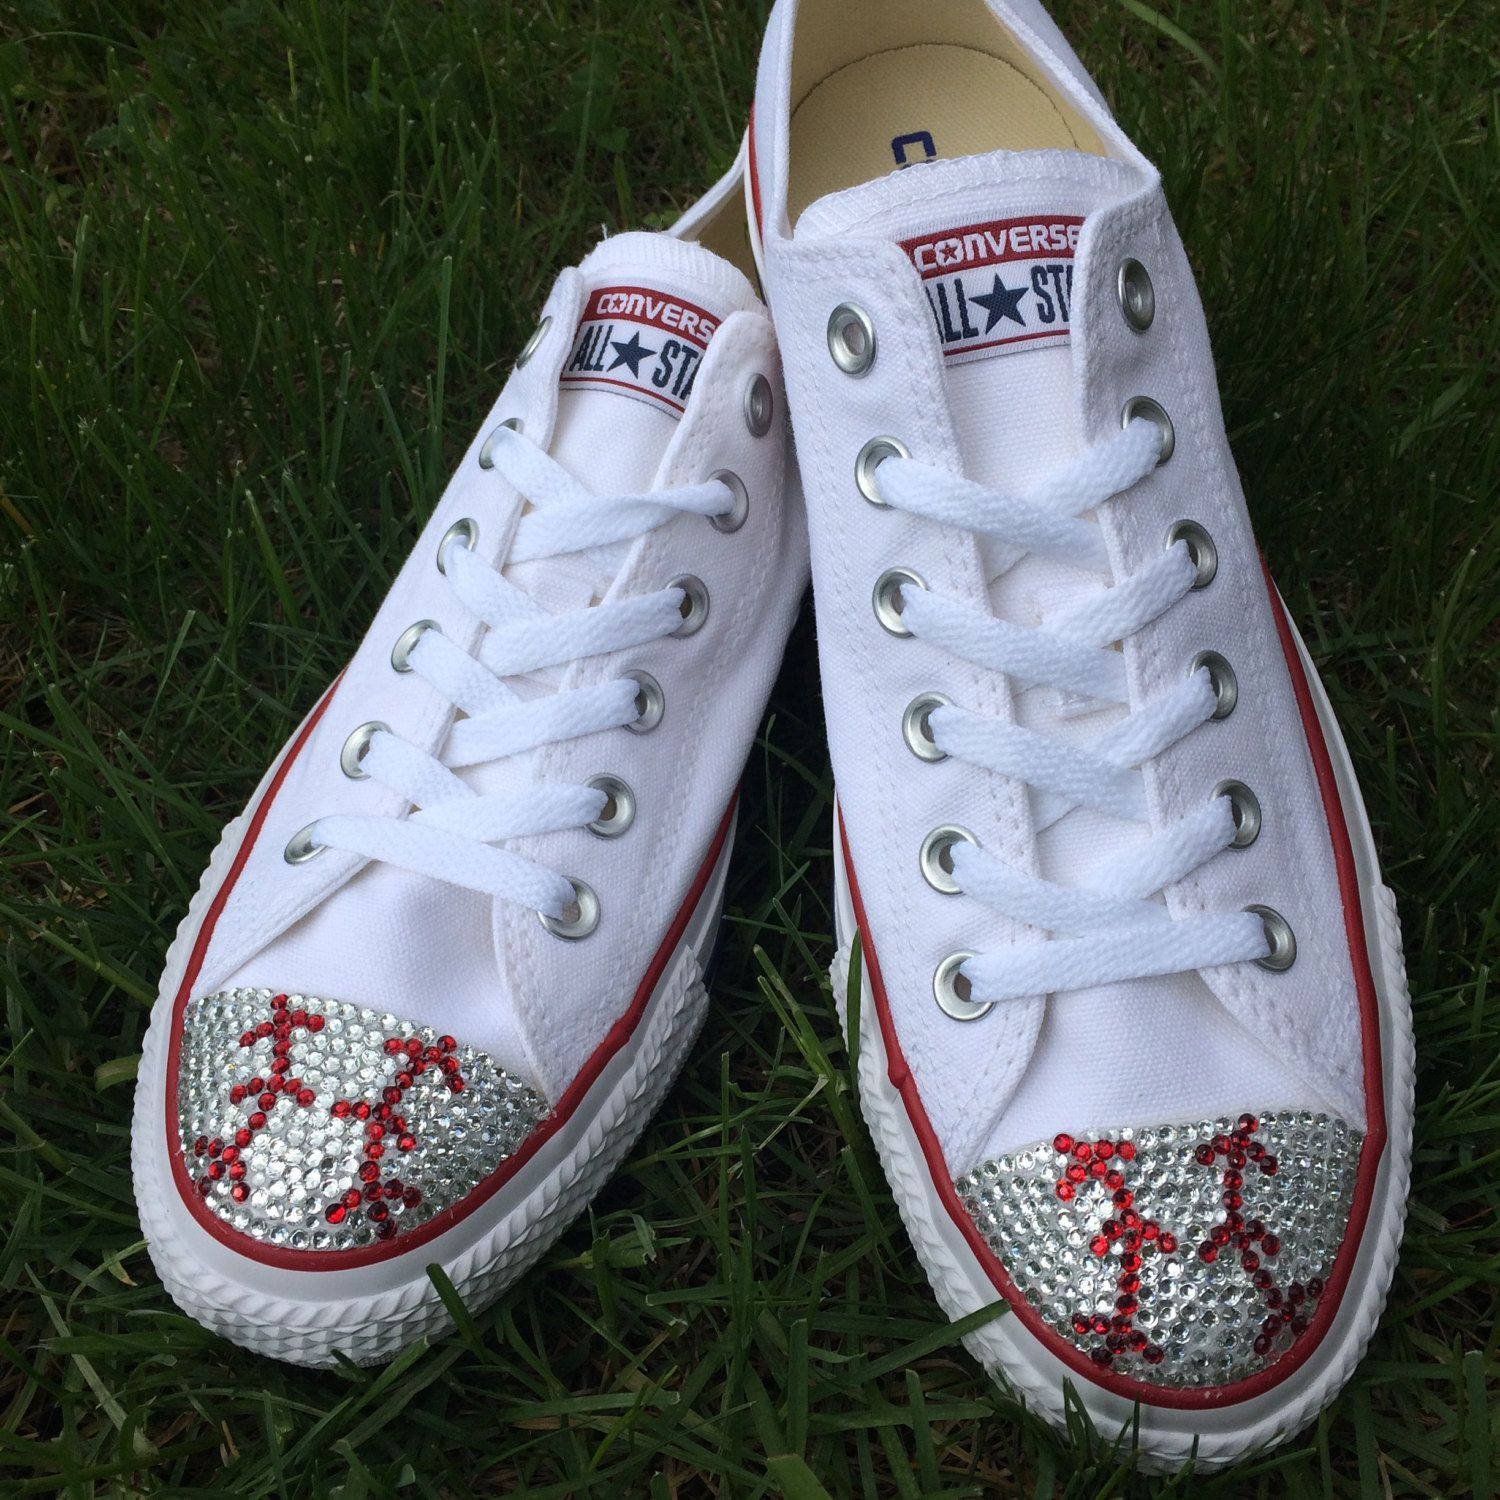 4987934ae147 Baseball Converse Shoes. Women s White Low Top Converse Shoes with Baseball  Bling. Rhinestone baseball Bling perfect for any Baseball Fan by  TrickedKicks on ...